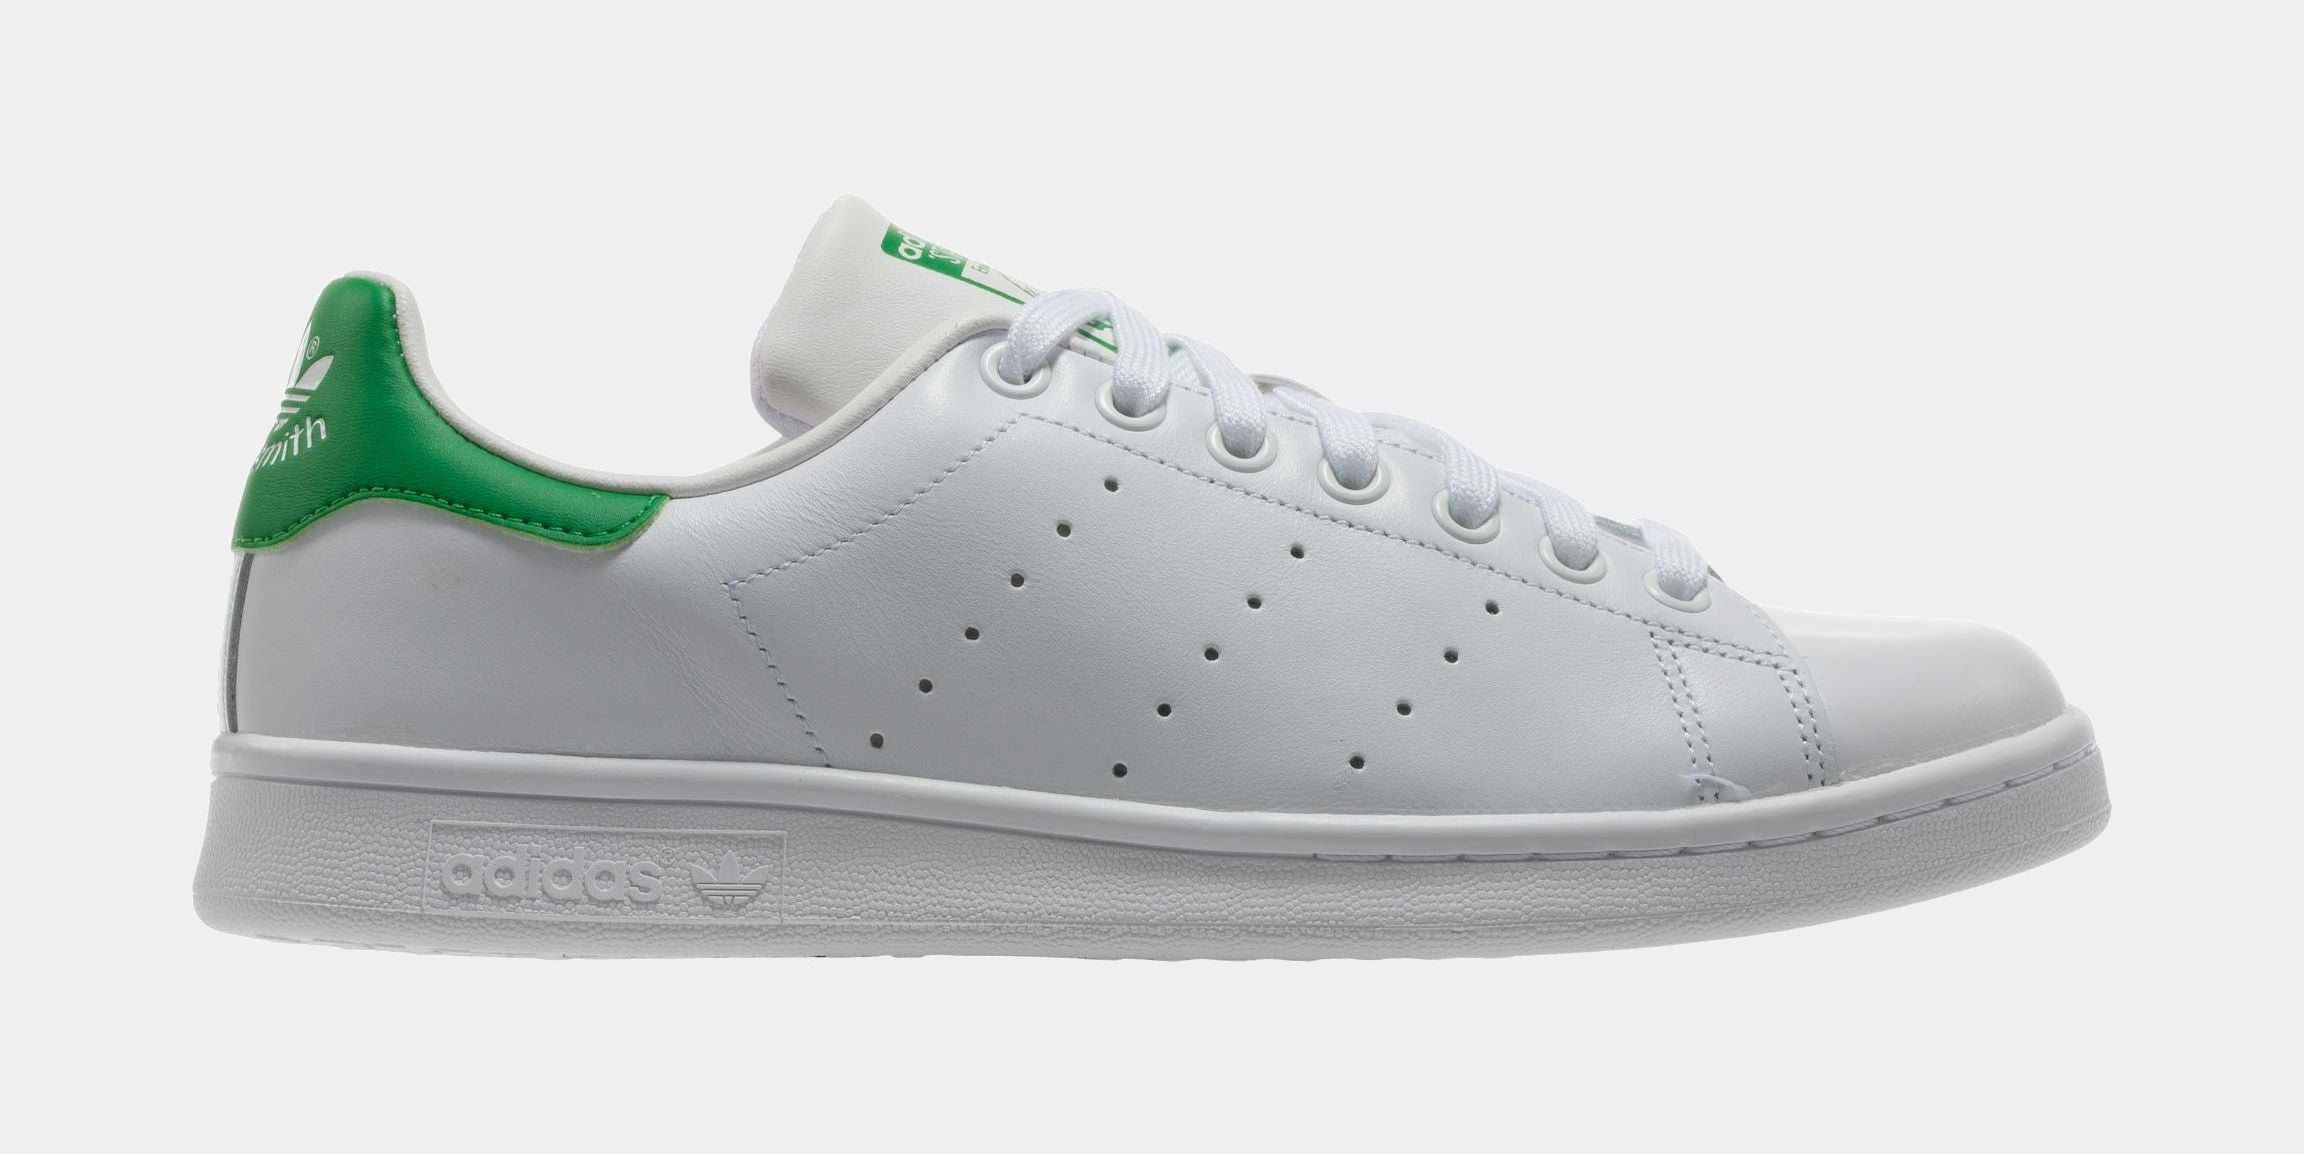 Stan Smith Original Mens Lifestyle Shoe (White/Fairway Green)